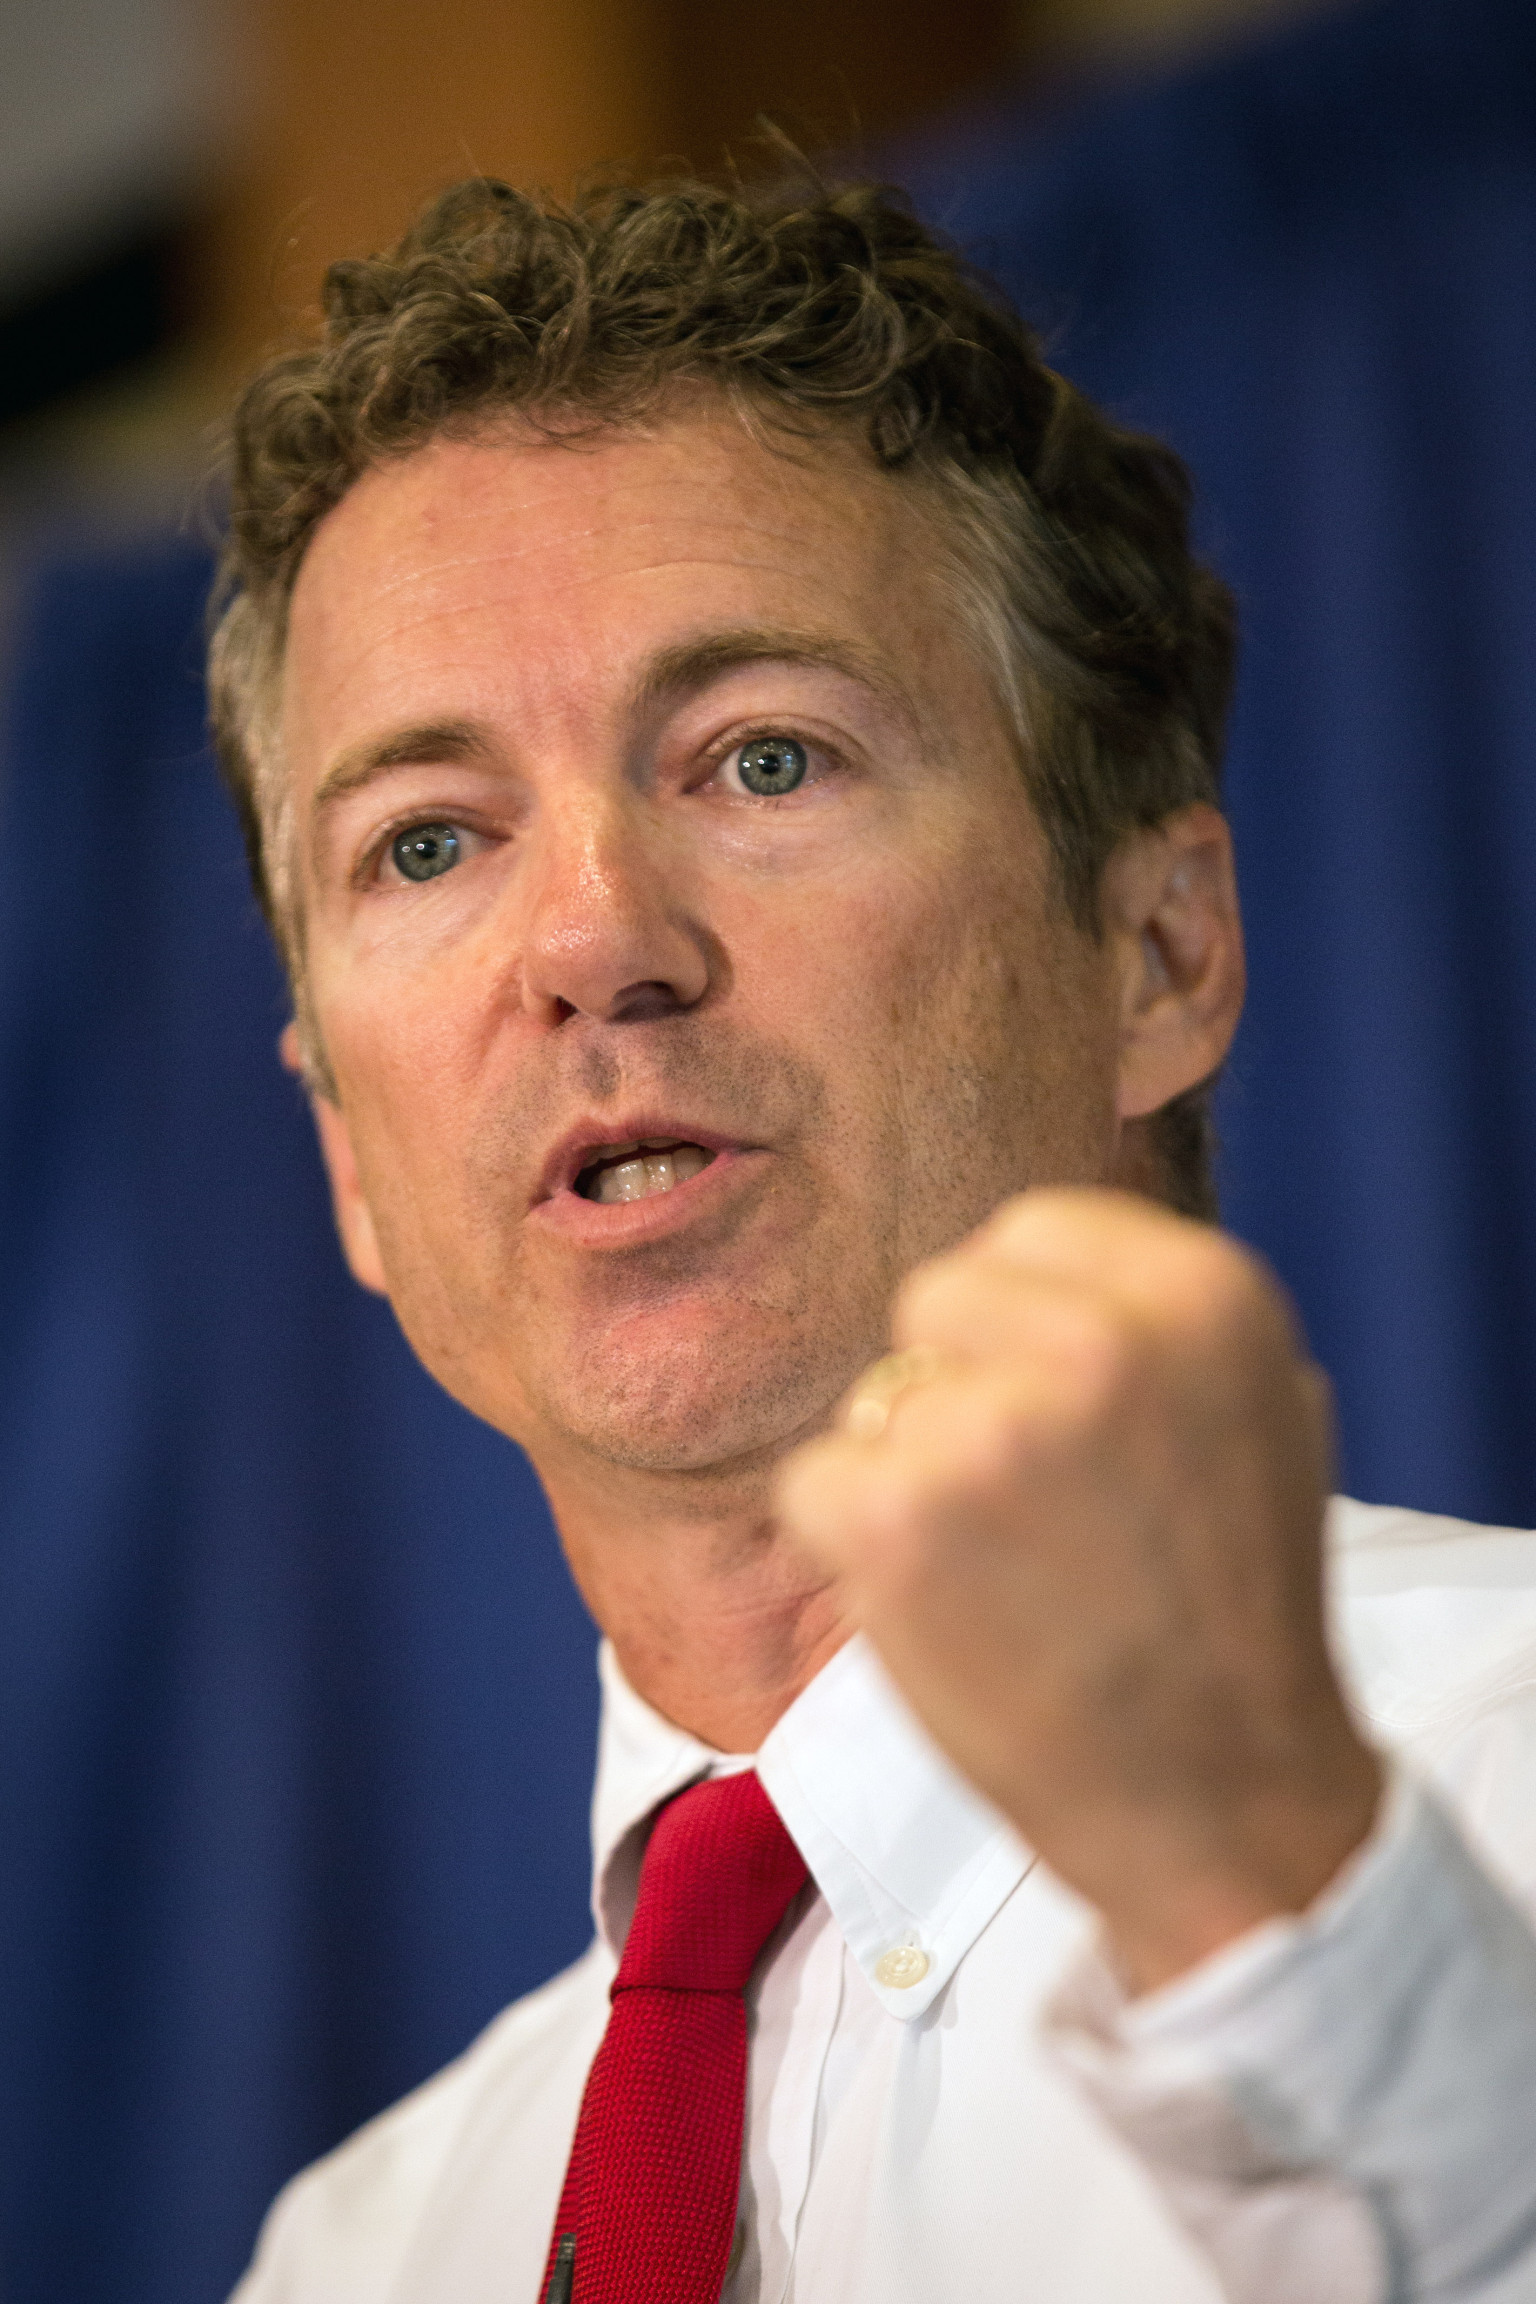 rand paul questions liz cheney over wyoming residency the rand paul questions liz cheney over wyoming residency the huffington post